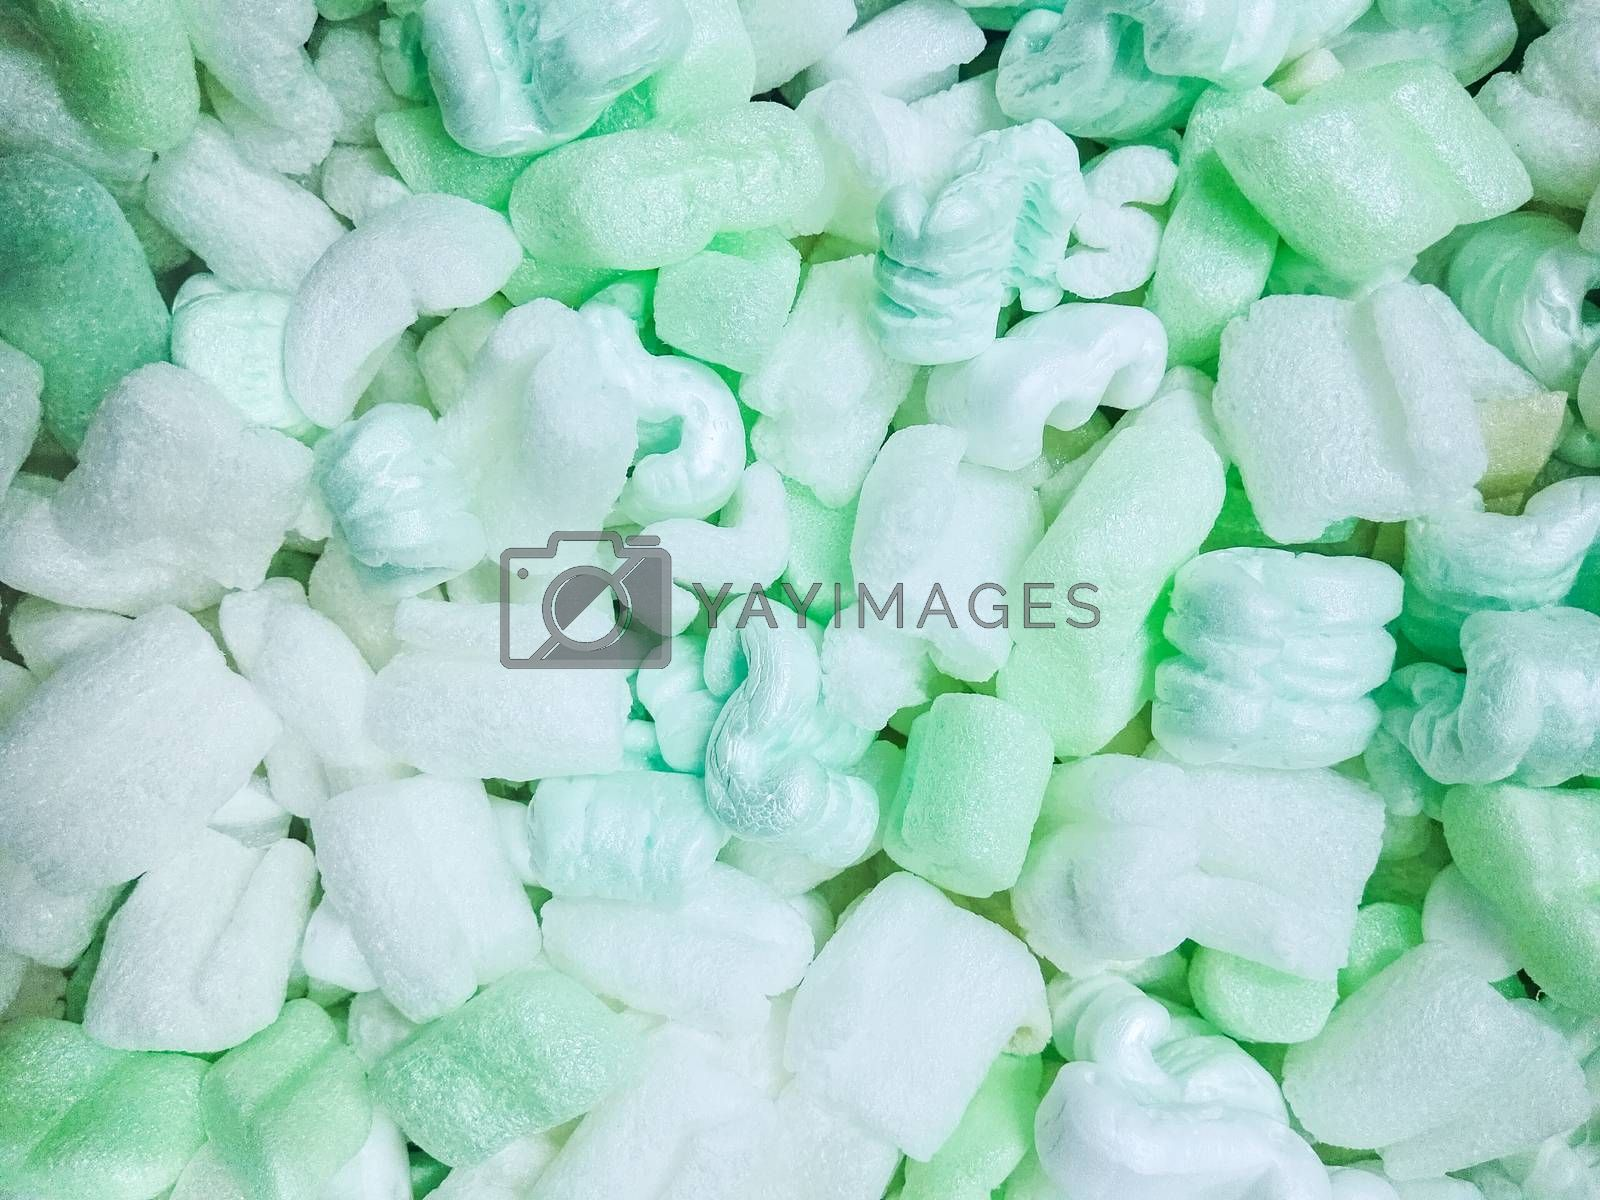 Green and white foam sponge texture background